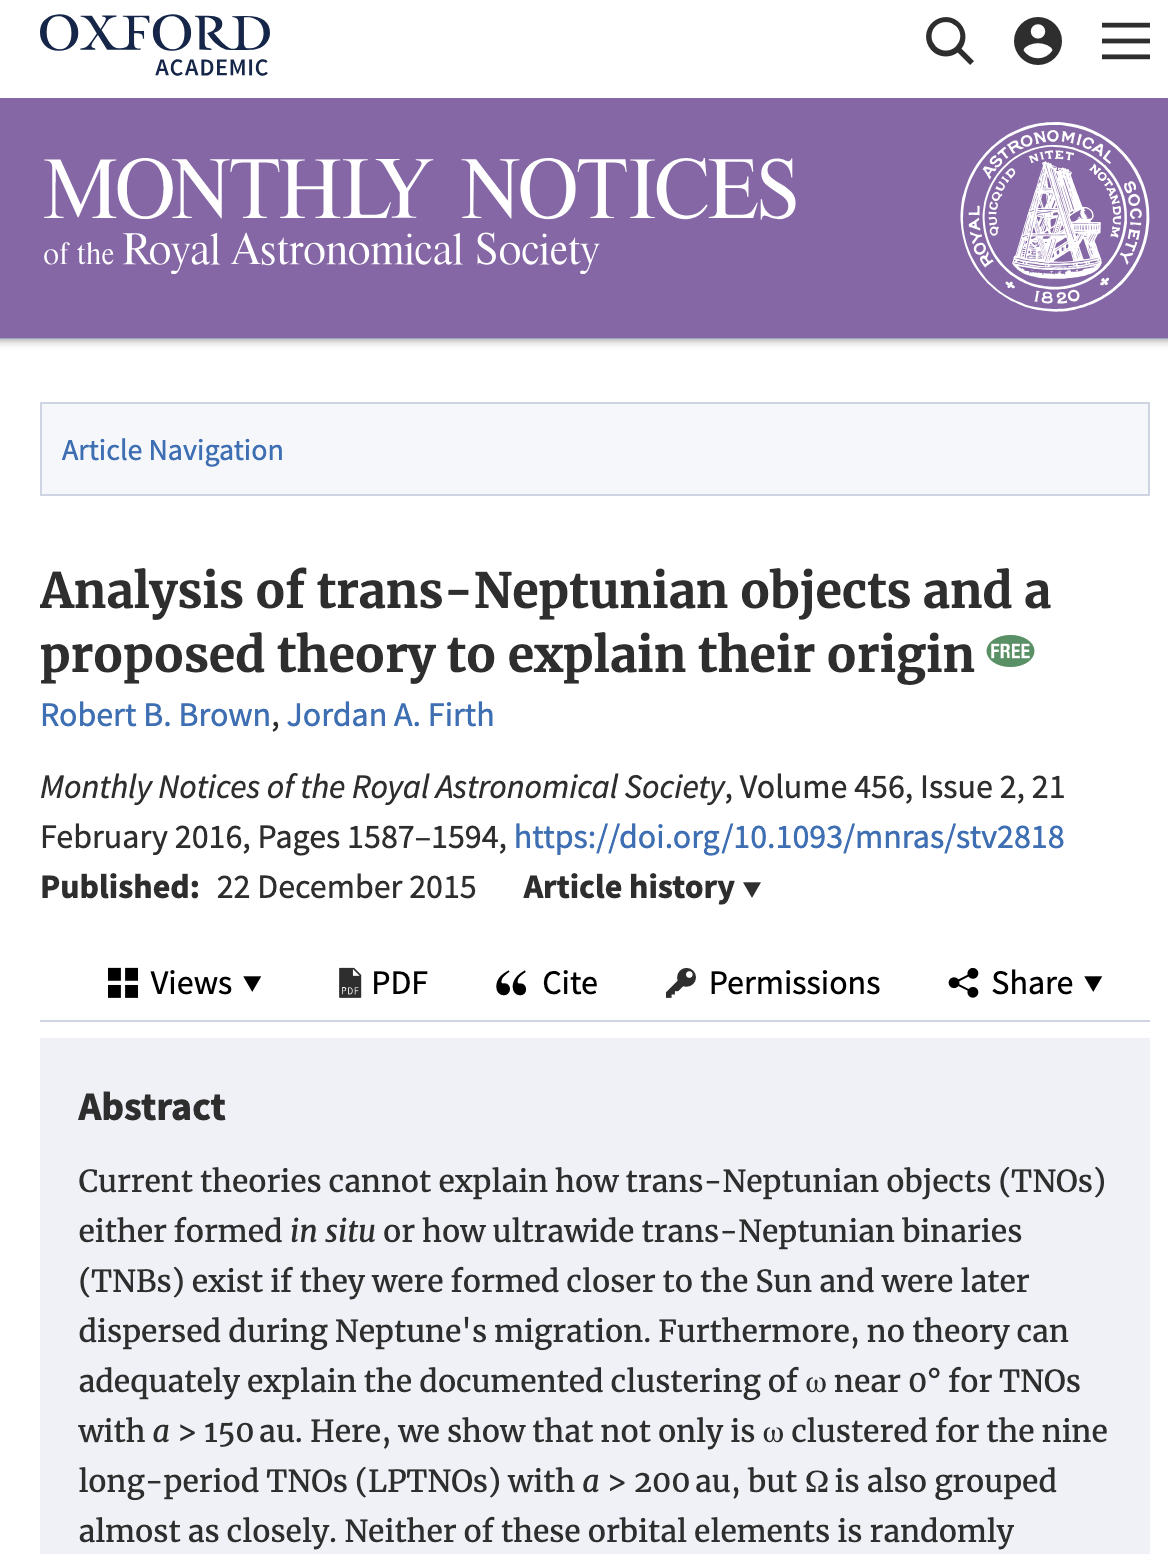 2015, MNRAS, Analysis of trans-Neptunian objects and a proposed theory to explain their origin